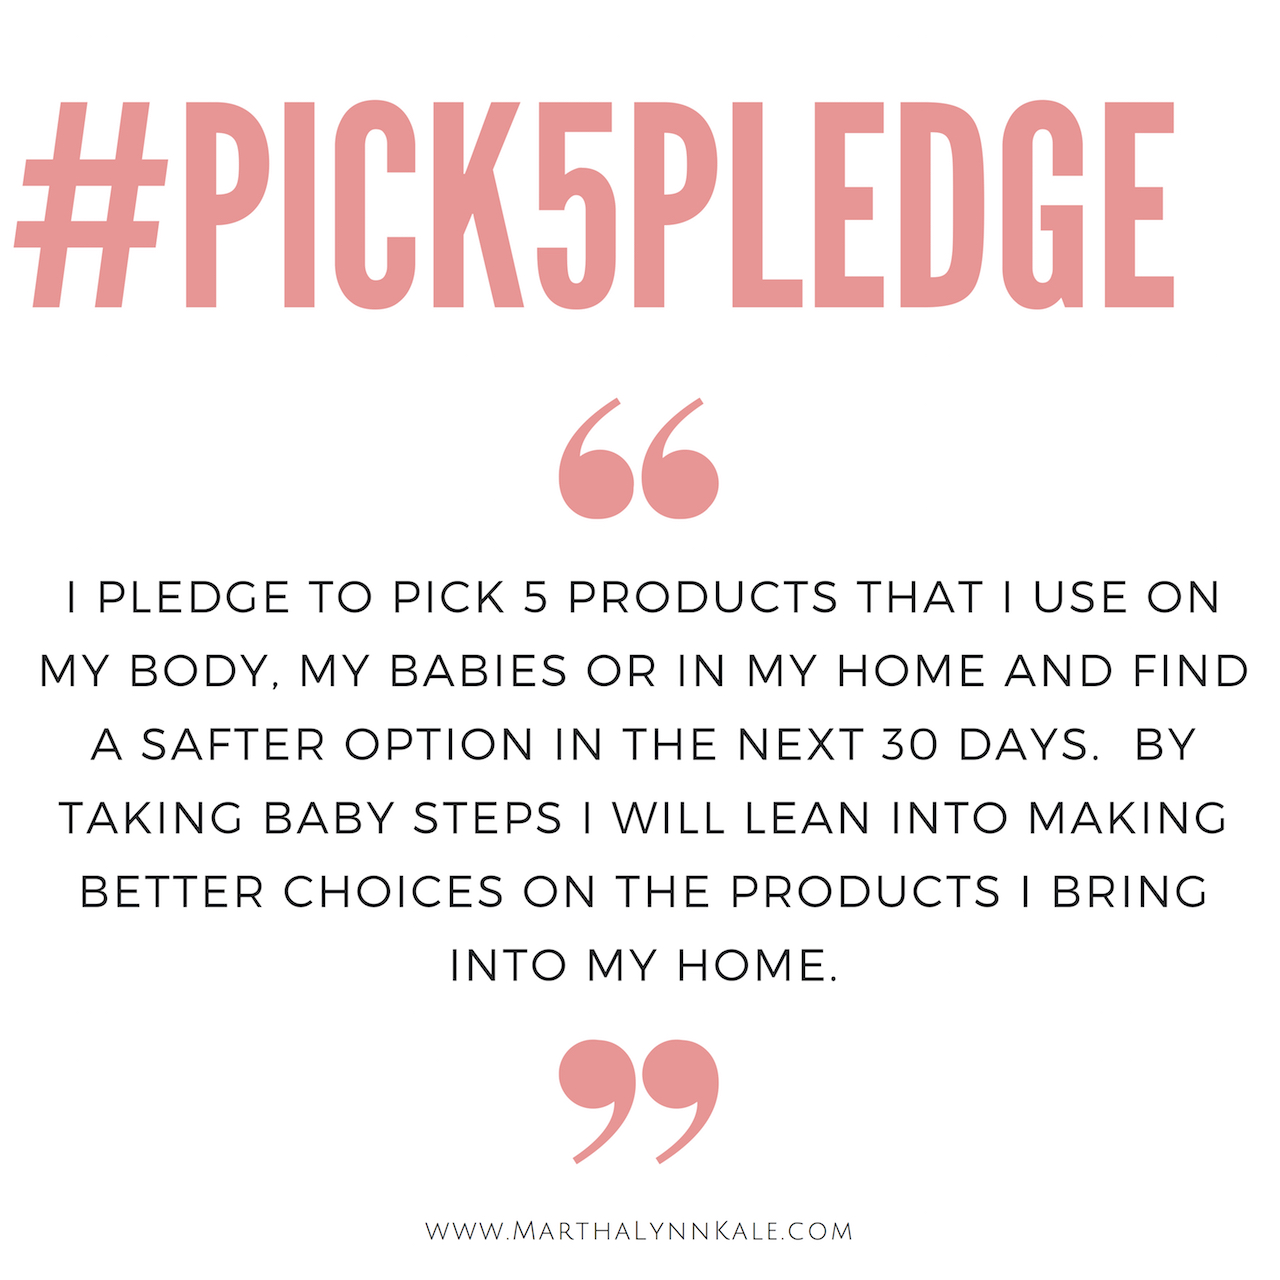 Pick-5-Pledge.jpg